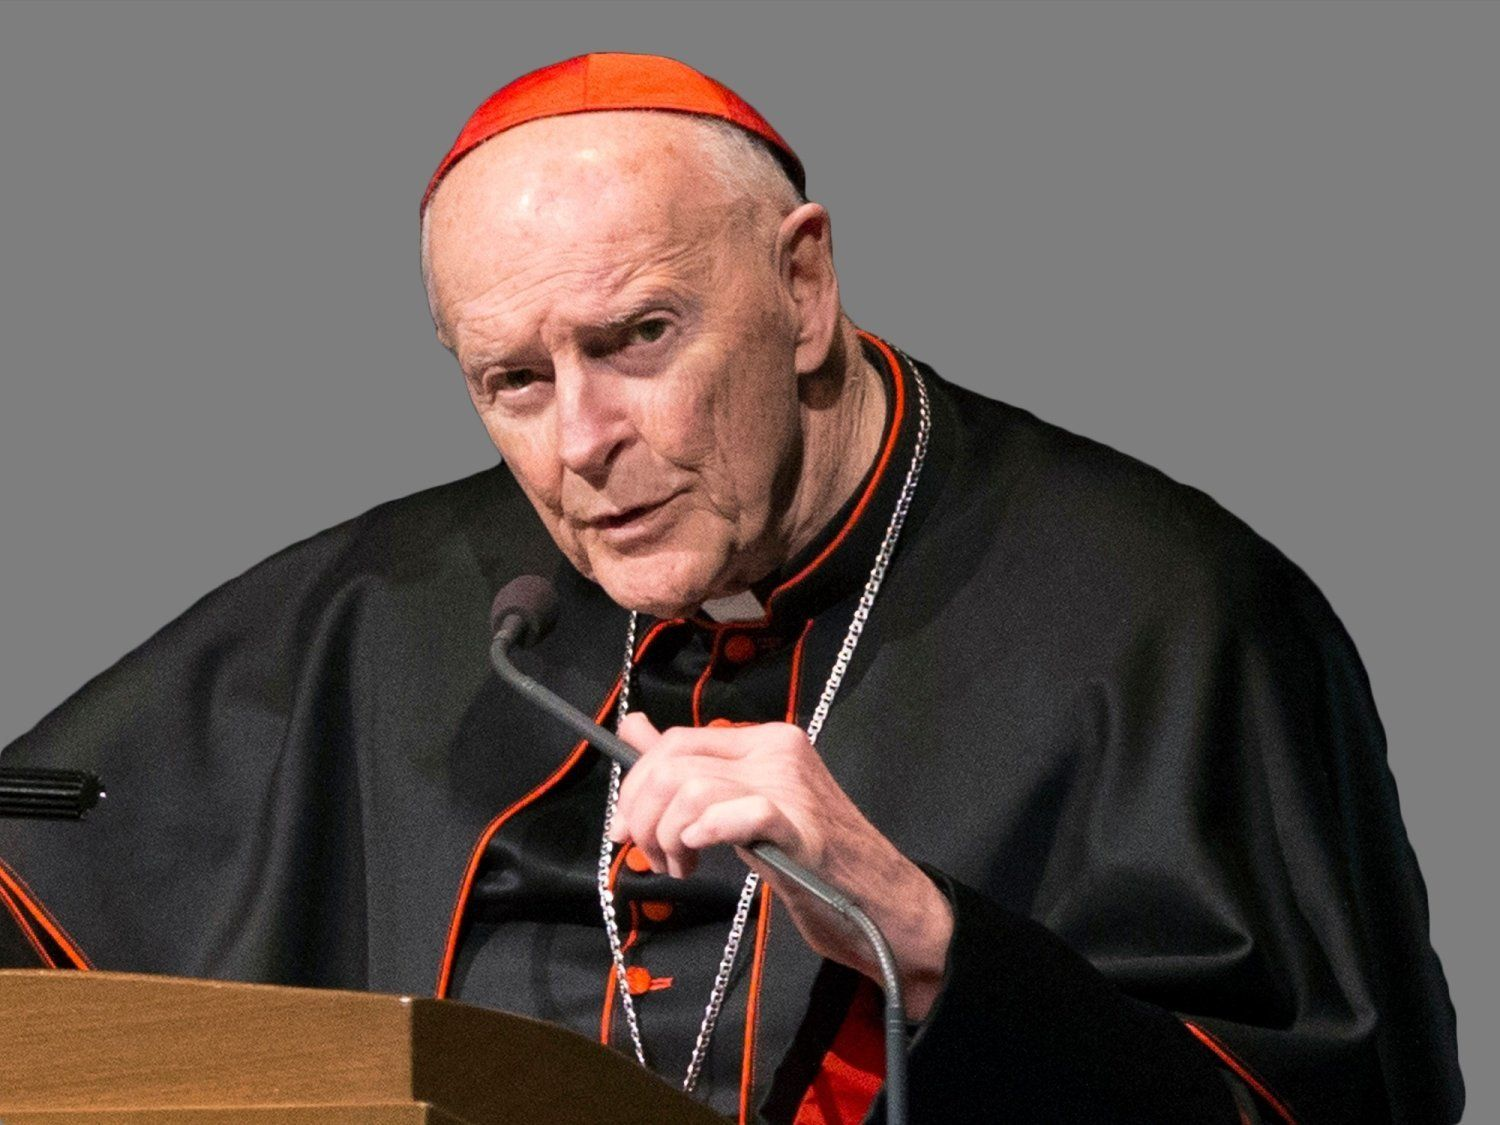 Vatican Expels Theordore McCarrick From Priesthood On Sex Abuse Accusations